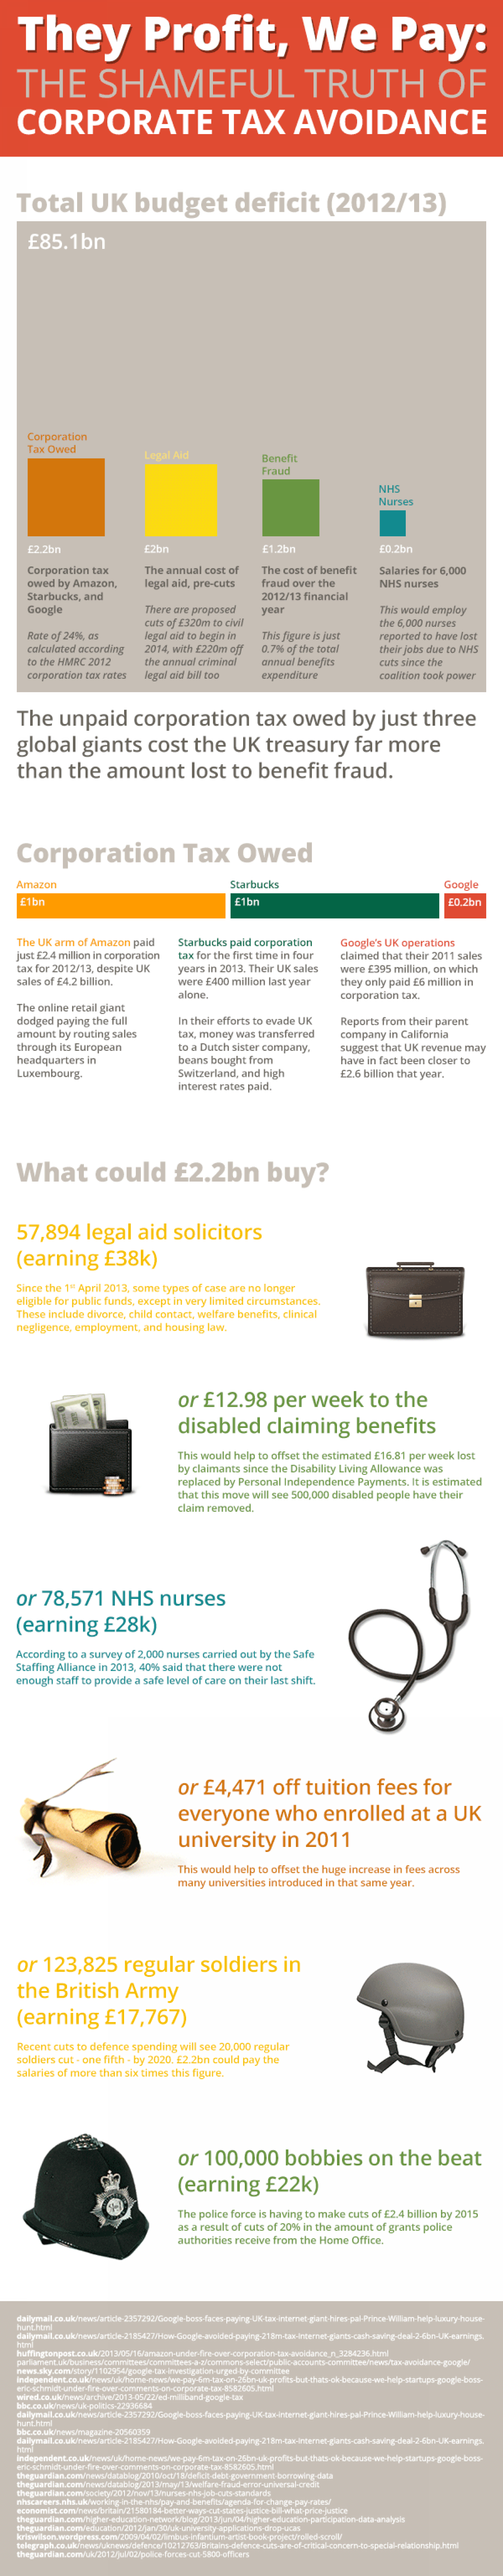 They Profit, We Pay: The Shameful Truth of Corporate Tax Avoidance Infographic